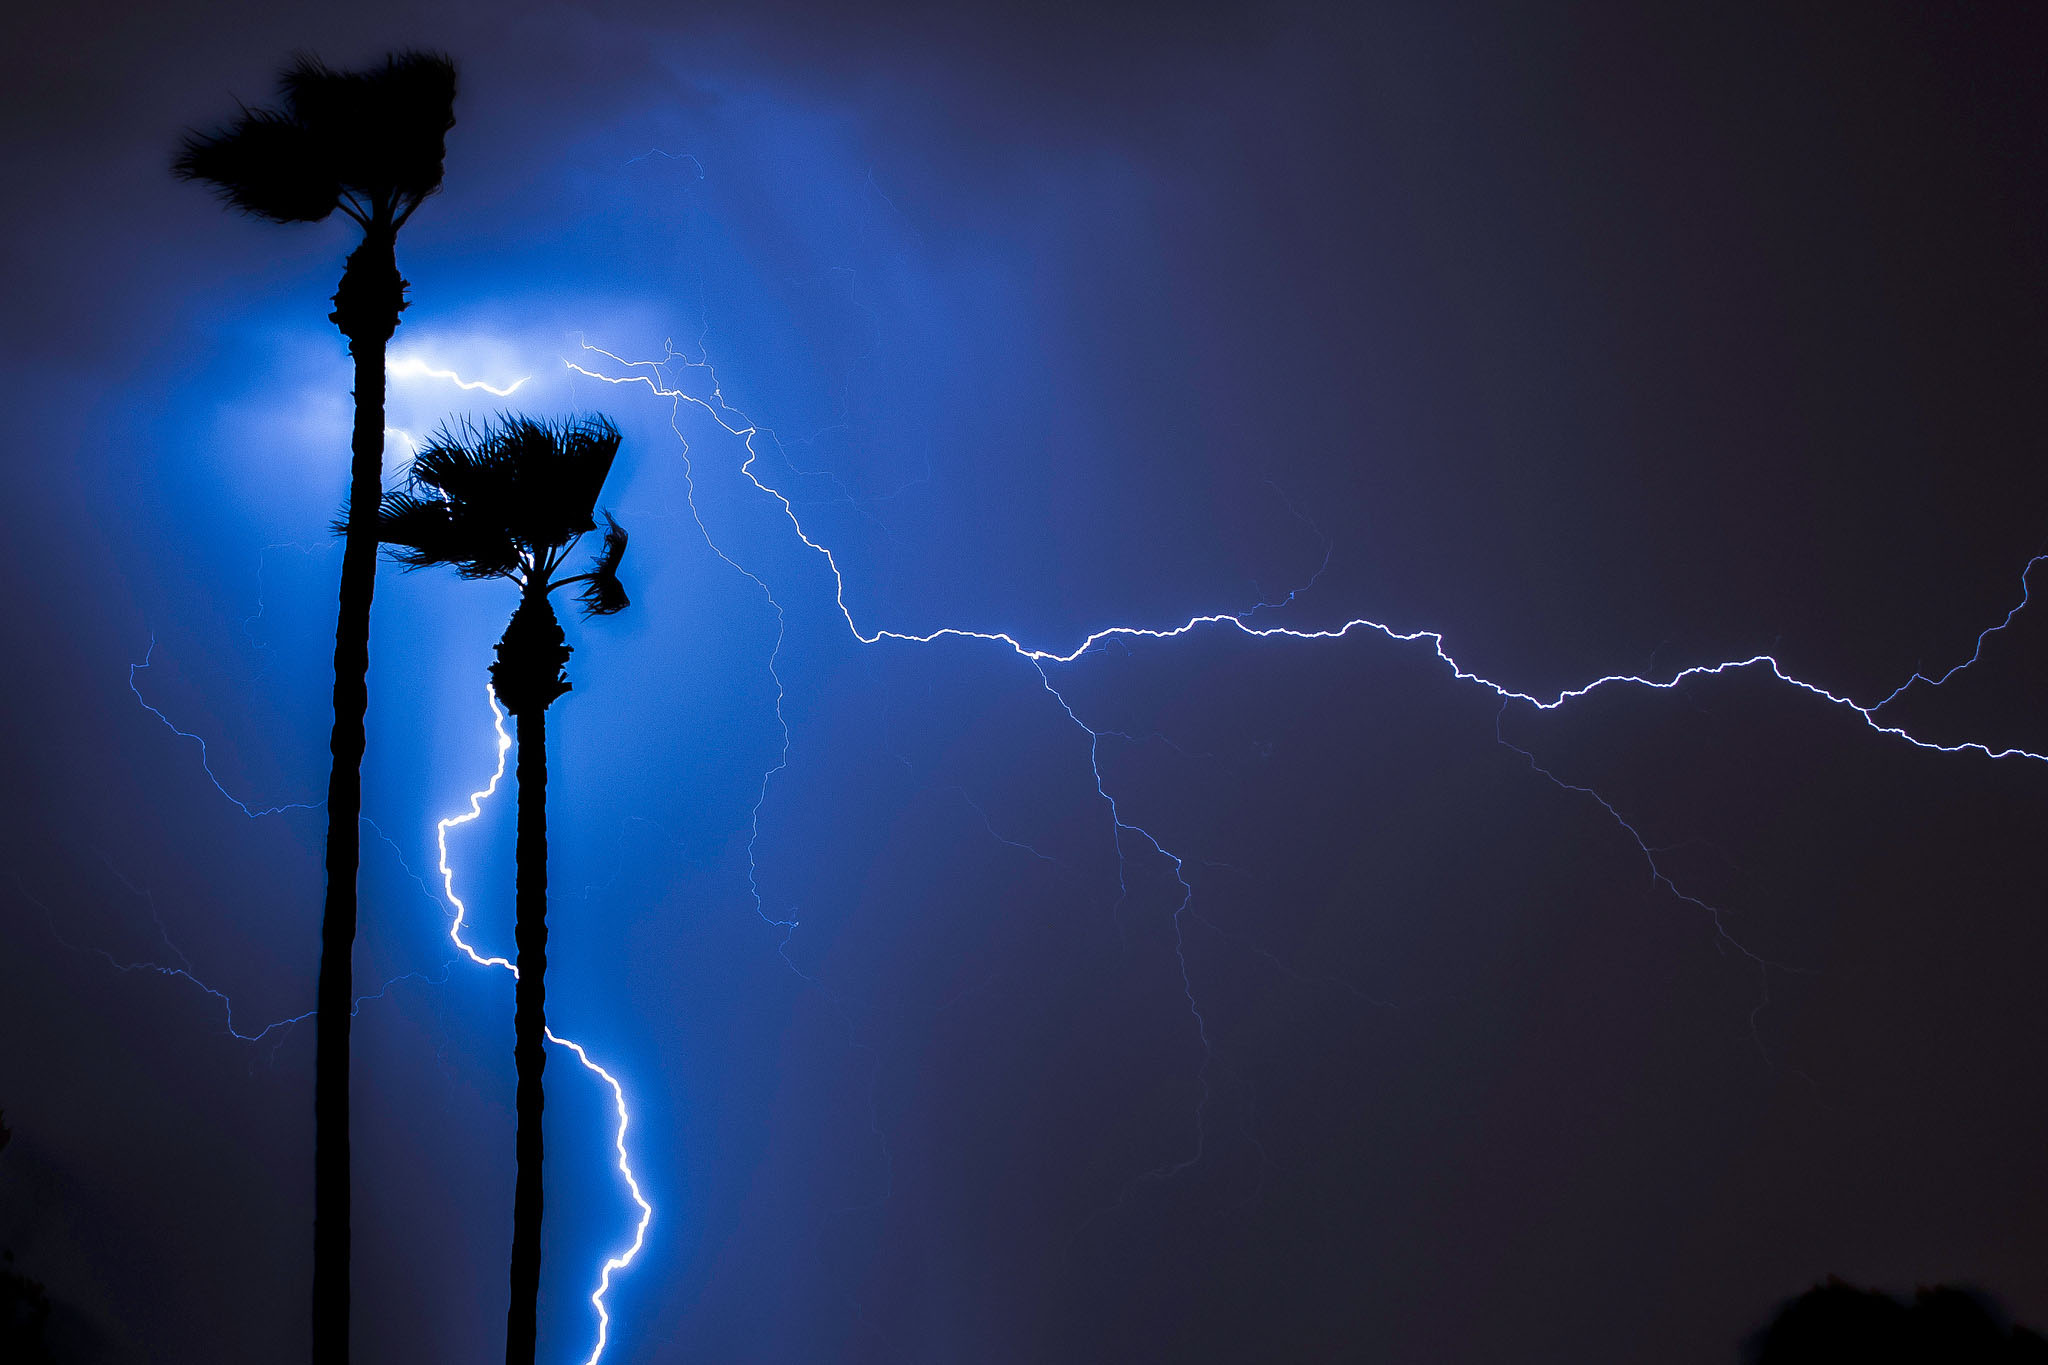 According to NOAA, in 2017 only 16 people were killed by lightning in the United States. Photo by Kenneth Hagemeyer (Flickr)